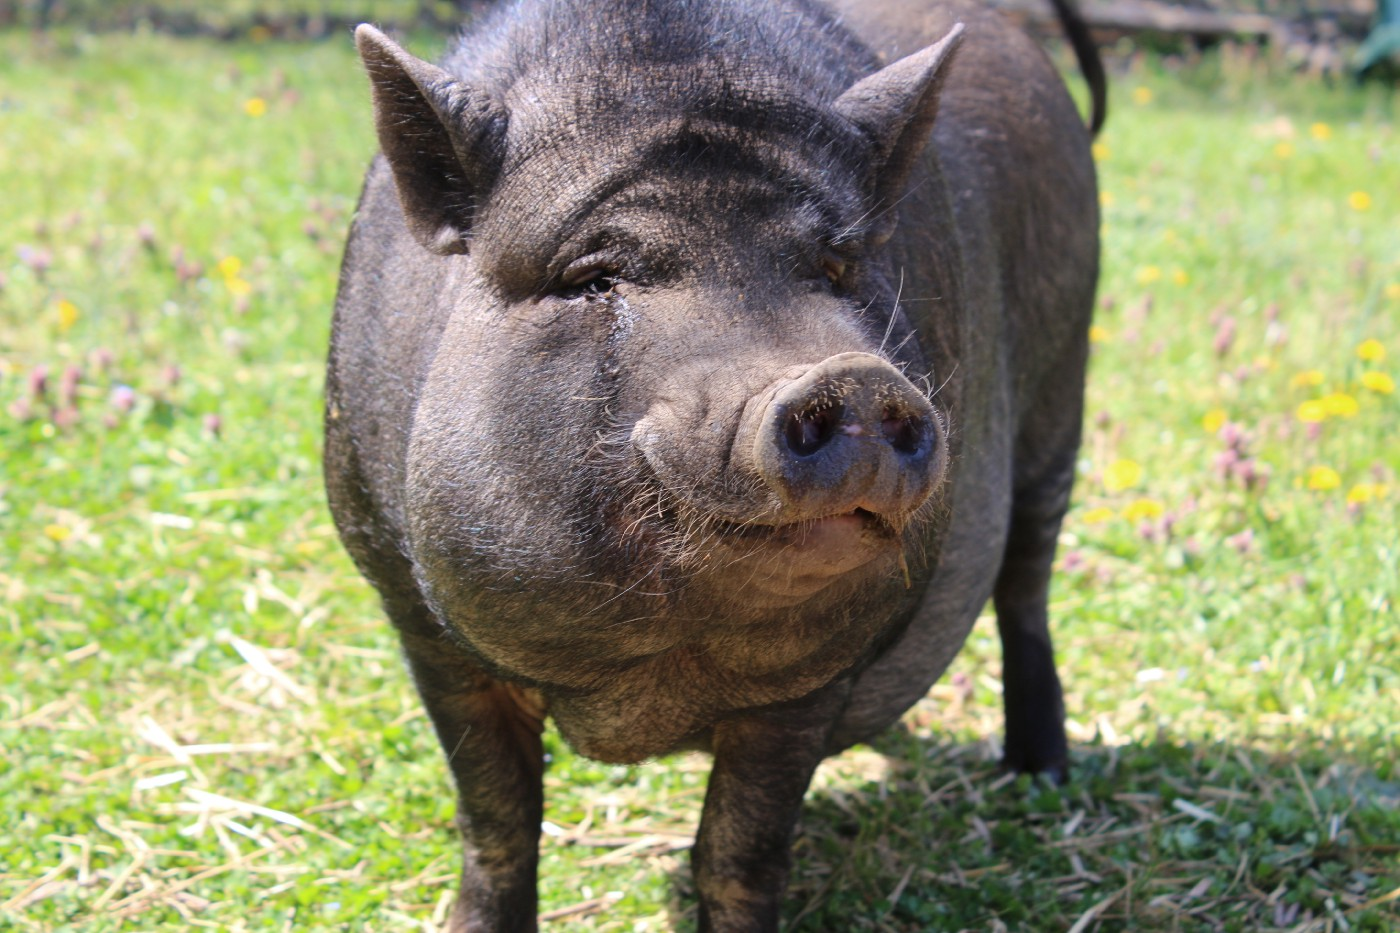 Picture of a potbellied pig—kinda reminds me of my sergeant.